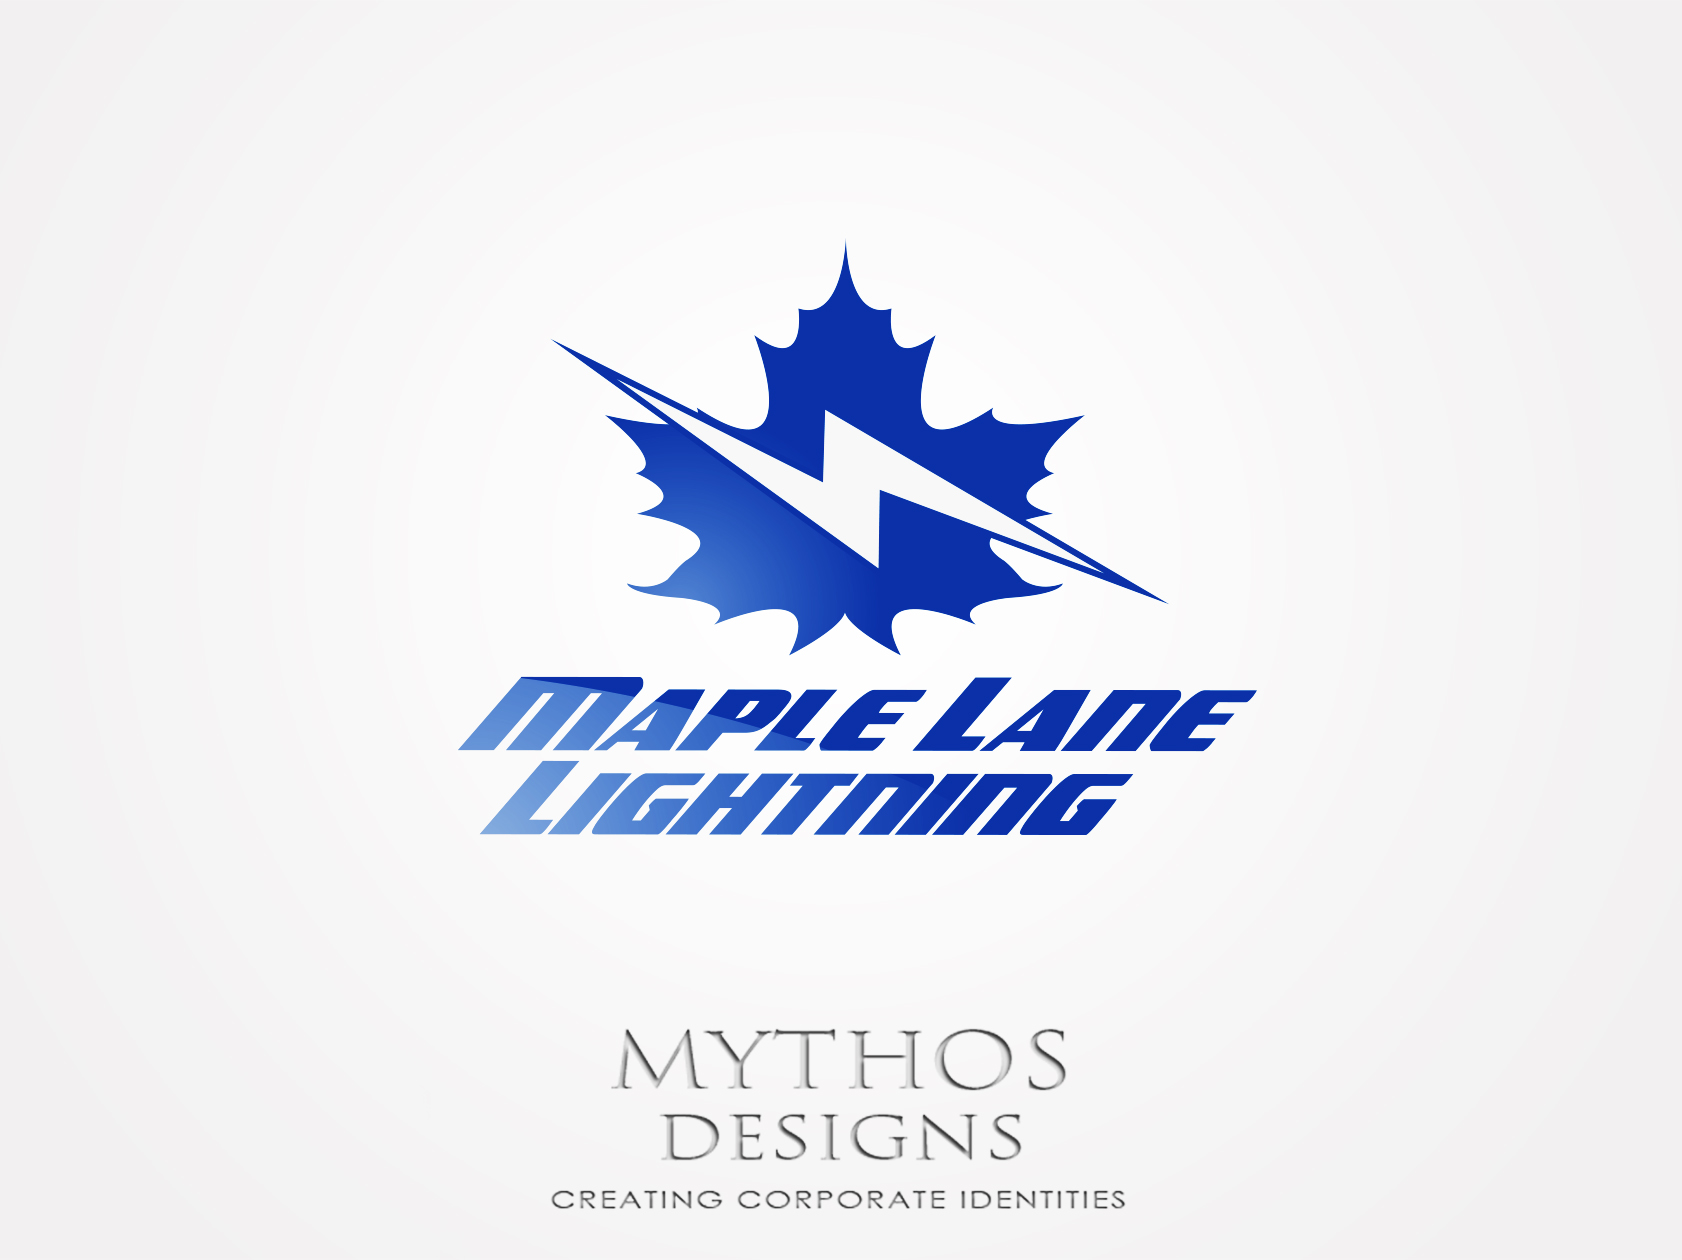 Logo Design by Mythos Designs - Entry No. 7 in the Logo Design Contest Maple Lane Logo Design.